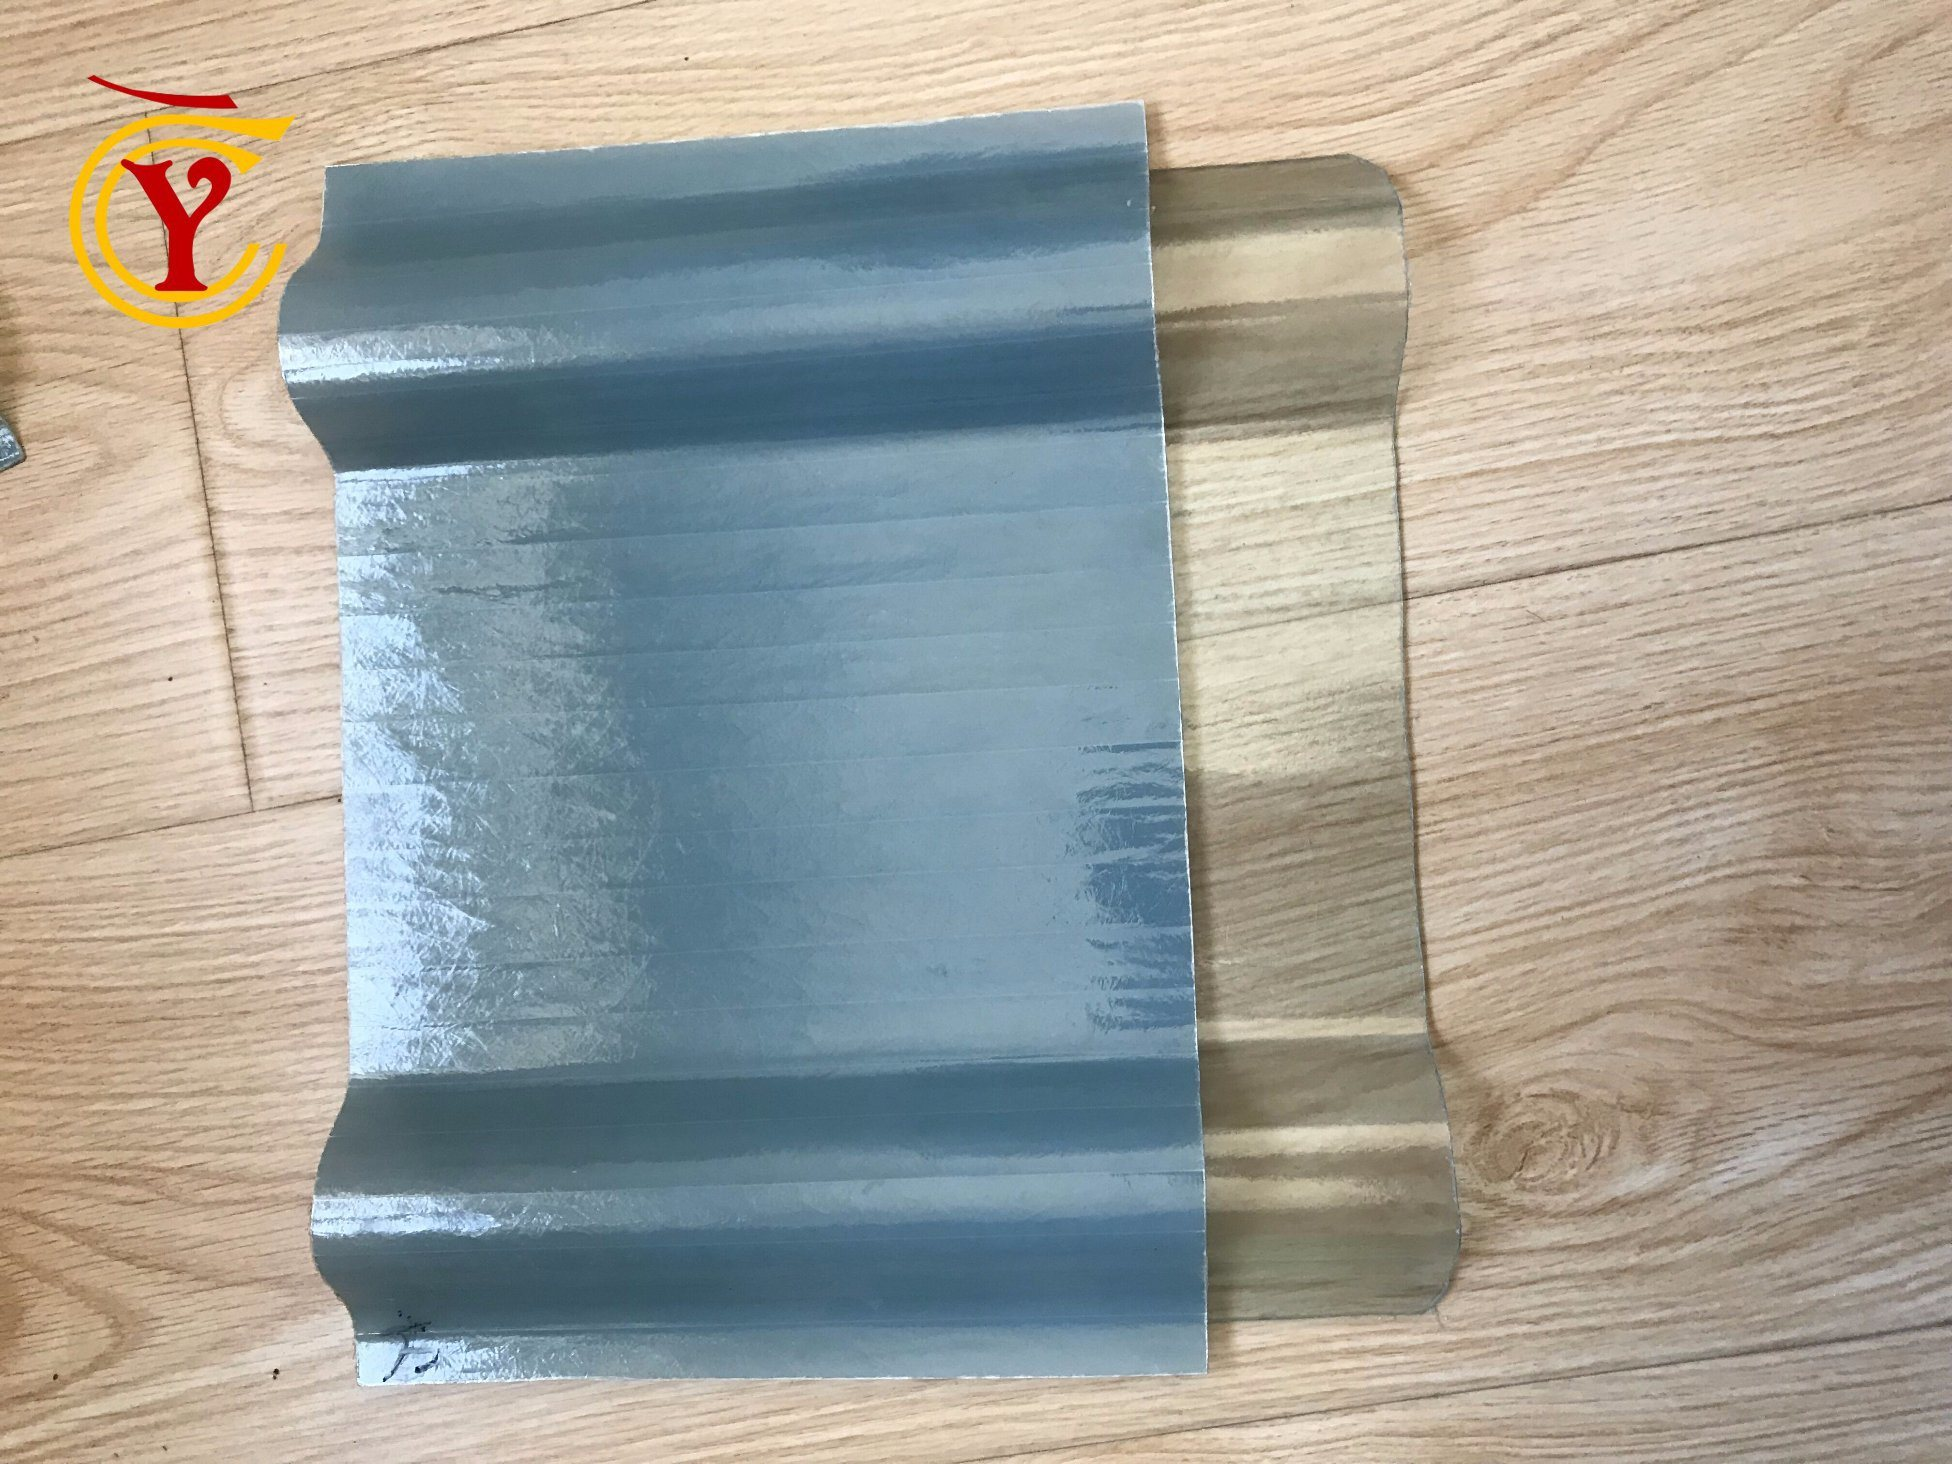 China Plastic Roofing, Residential Building of Clear Fiberglass ...